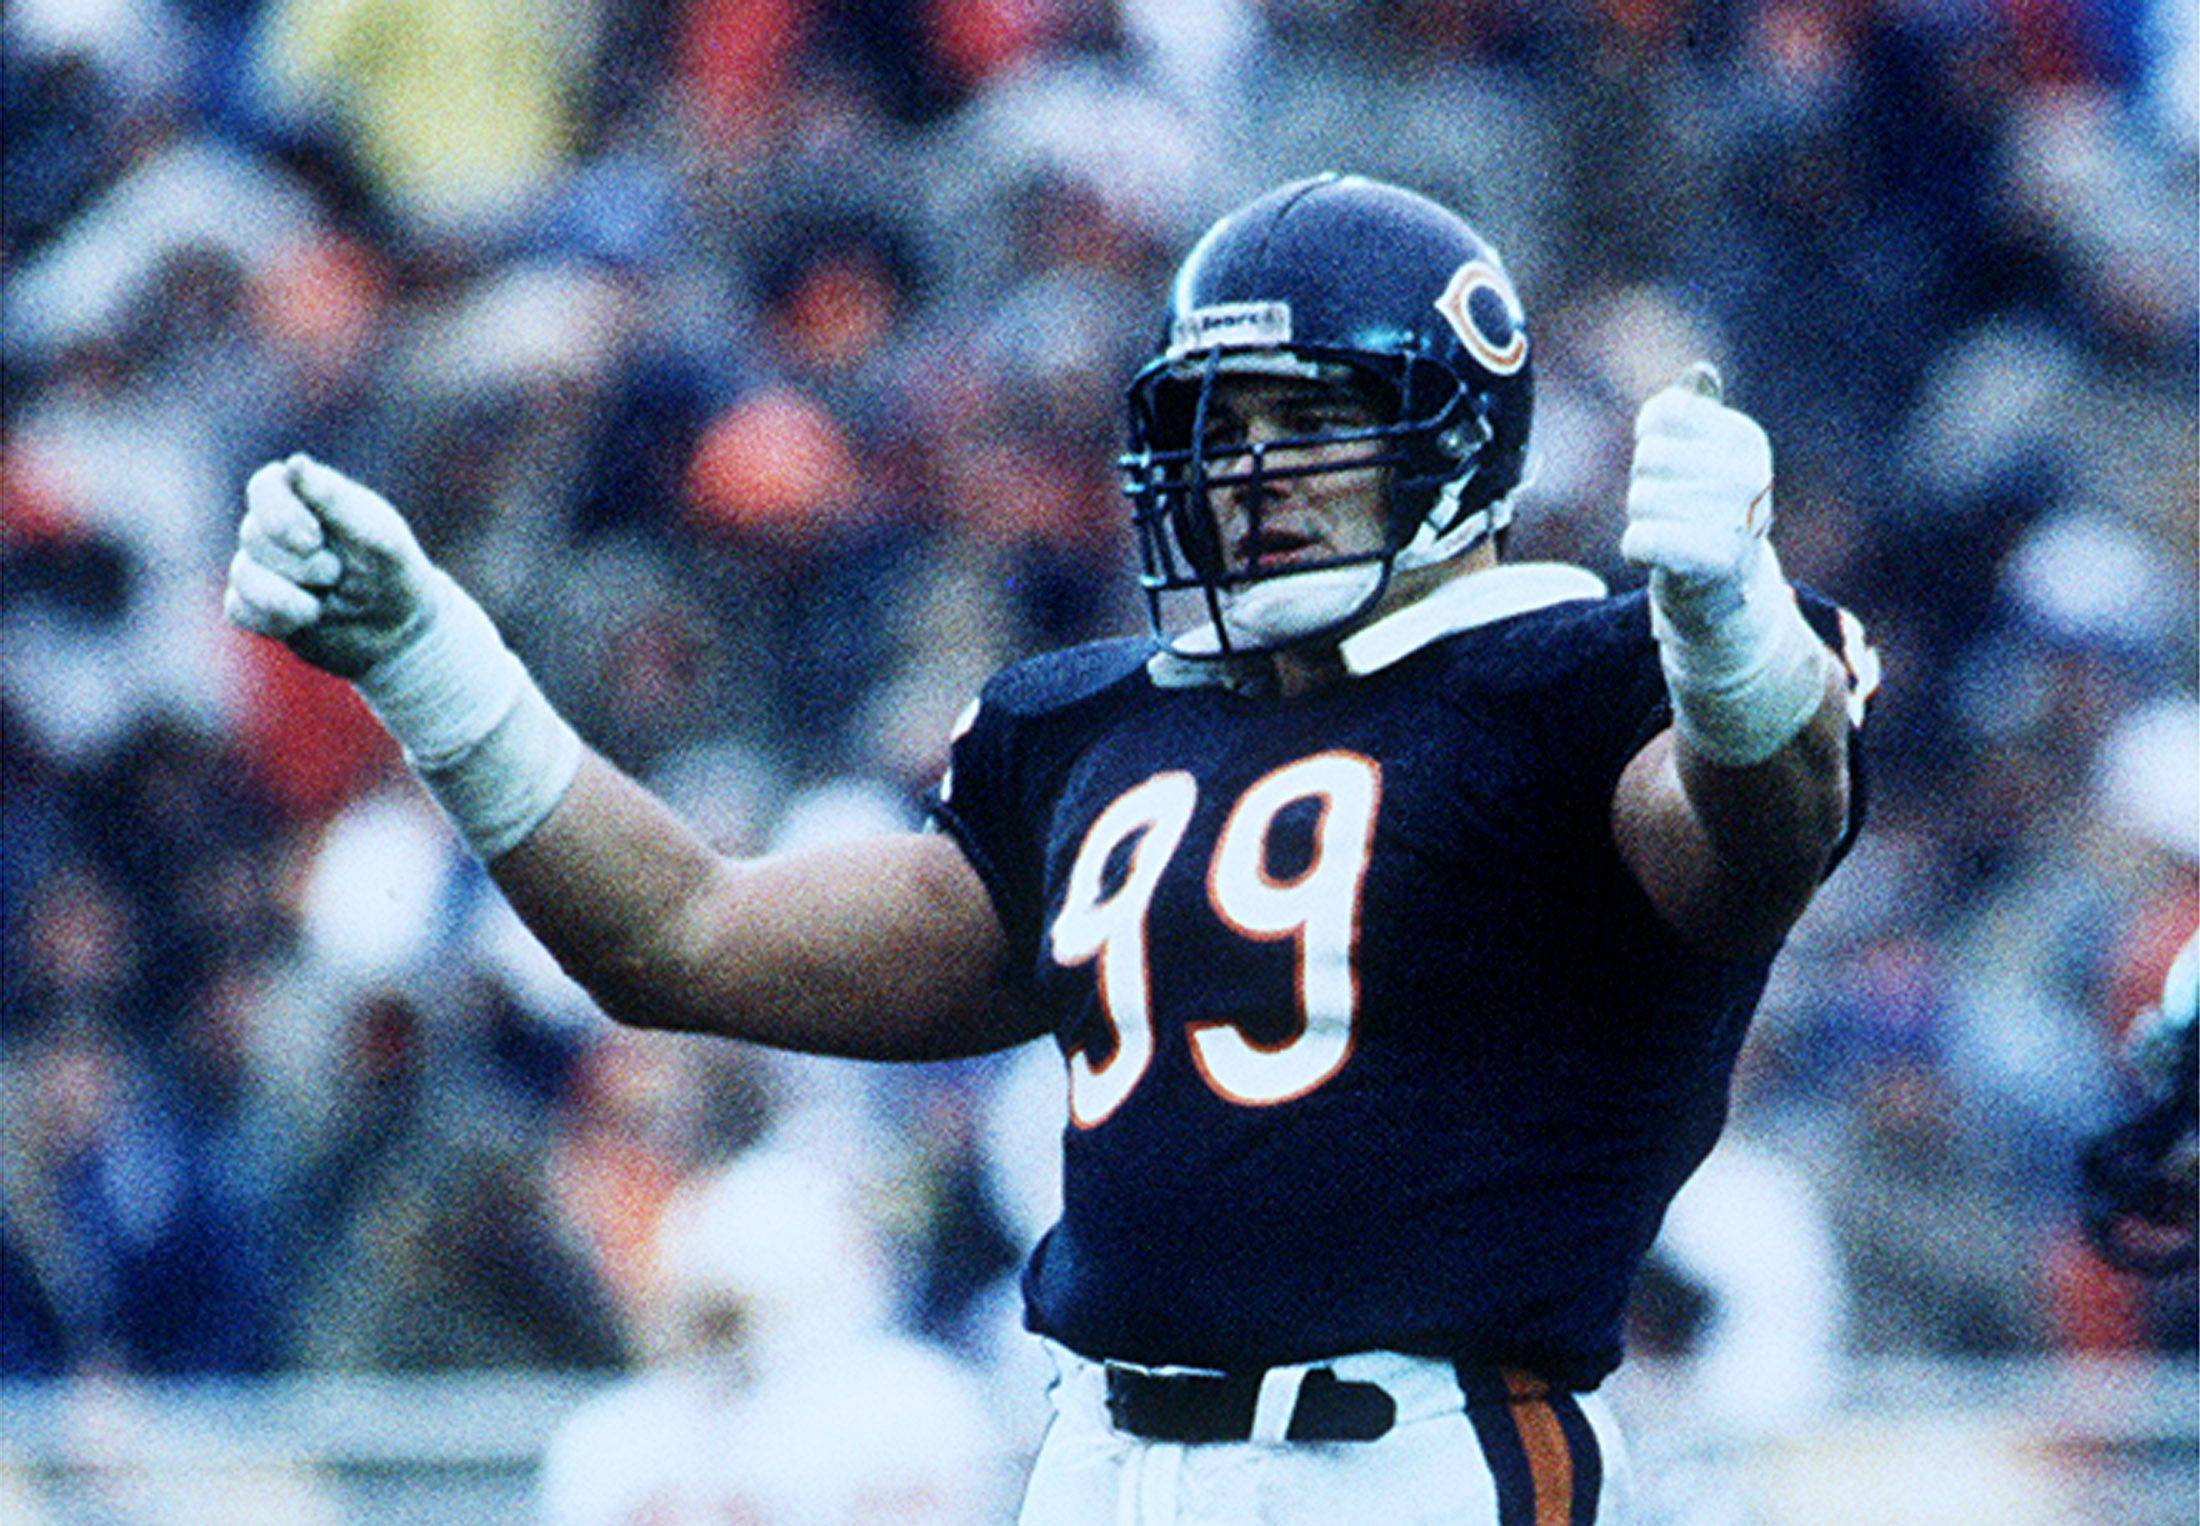 25 years ago, thrill of victory warmed Bears fans